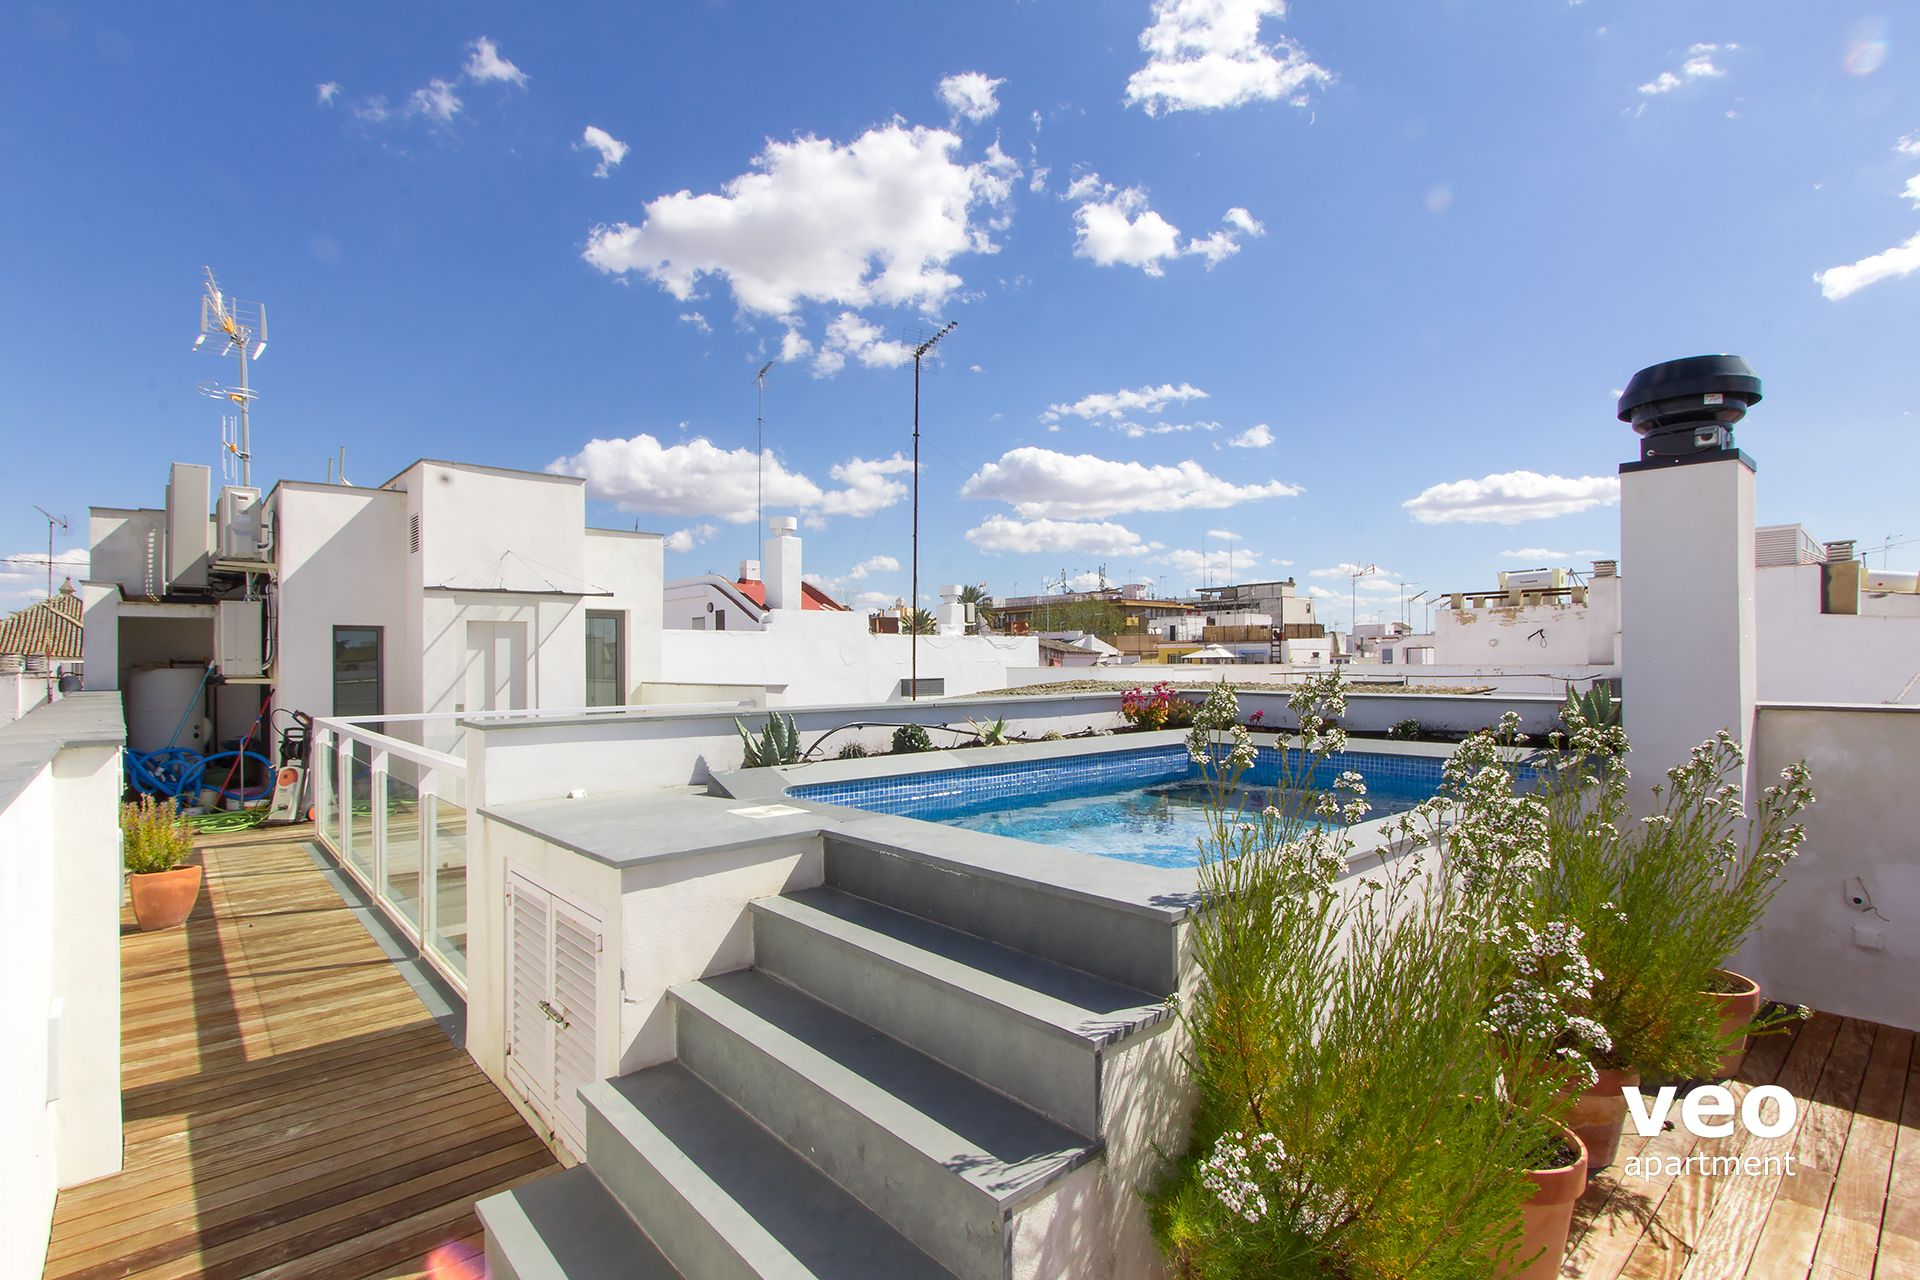 charmant Seville Apartment - Apartment with private terrace and pool.